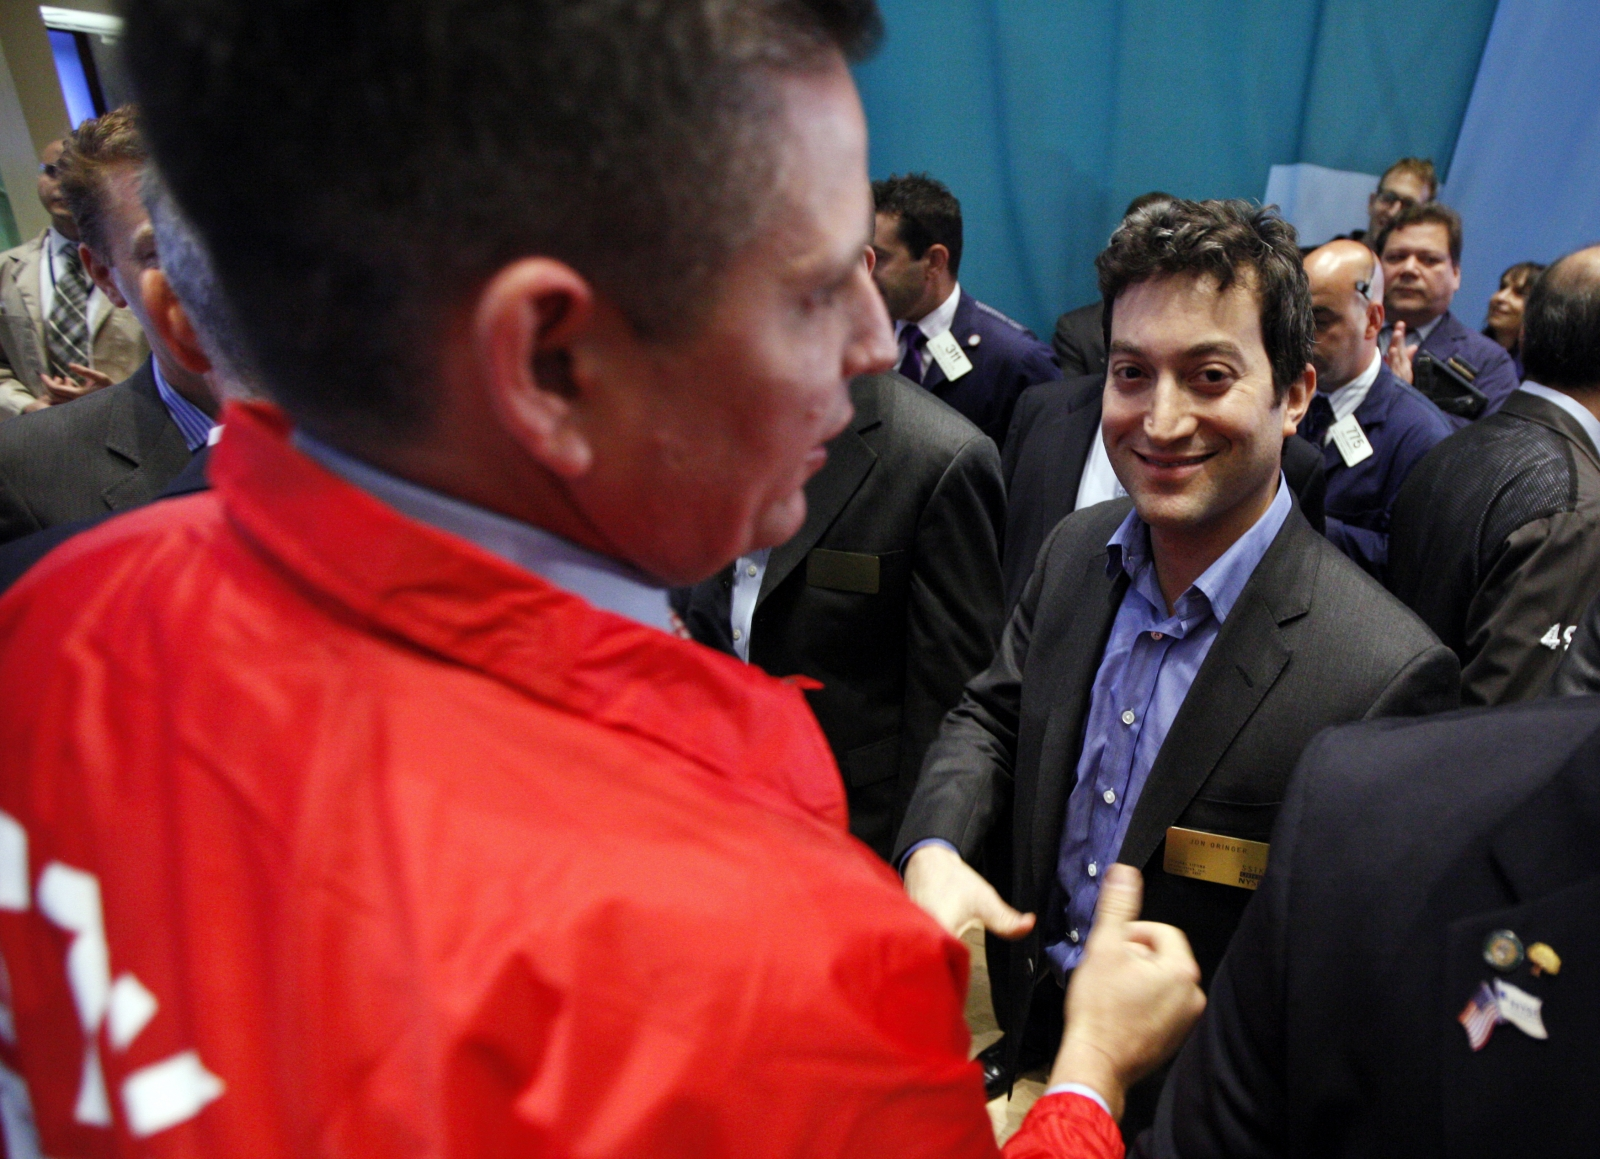 Shutterstock founder and CEO Jon Oringer (R) celebrates his company's first trades following it's IPO on the floor of the New York Stock Exchange, October 11, 2012.